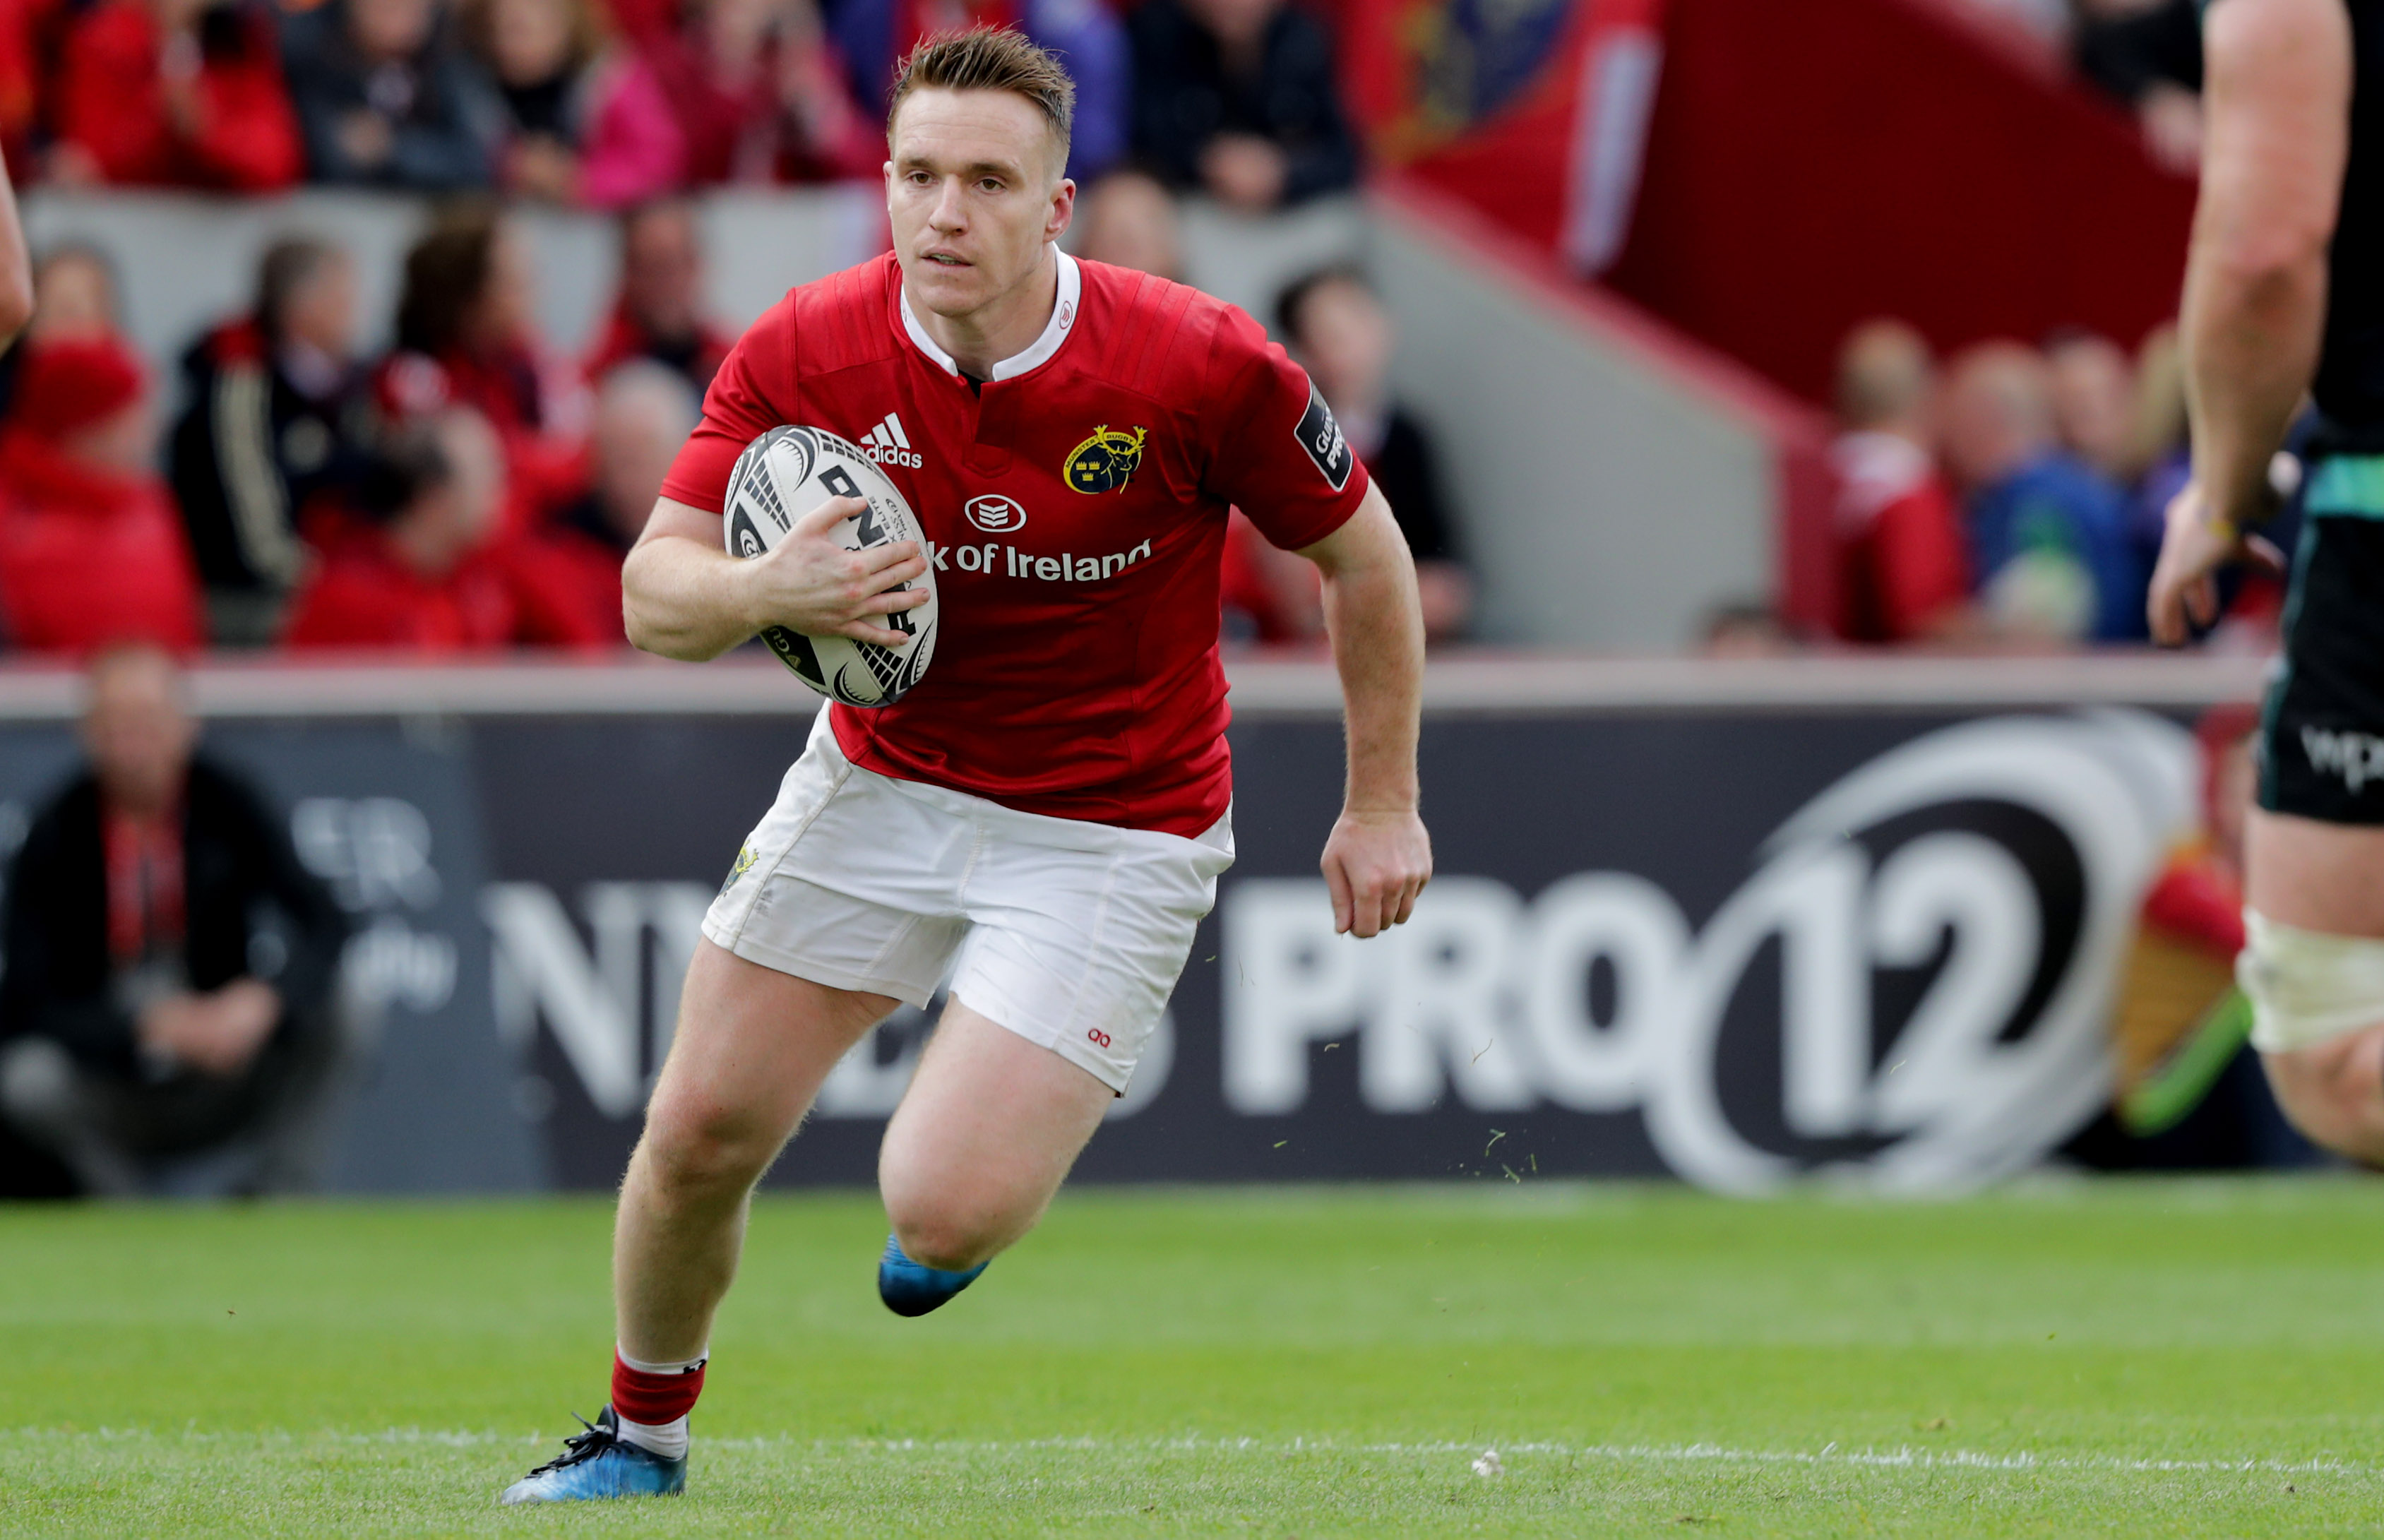 Rory Scannell will make his first start of the season for Munster tomorrow night.